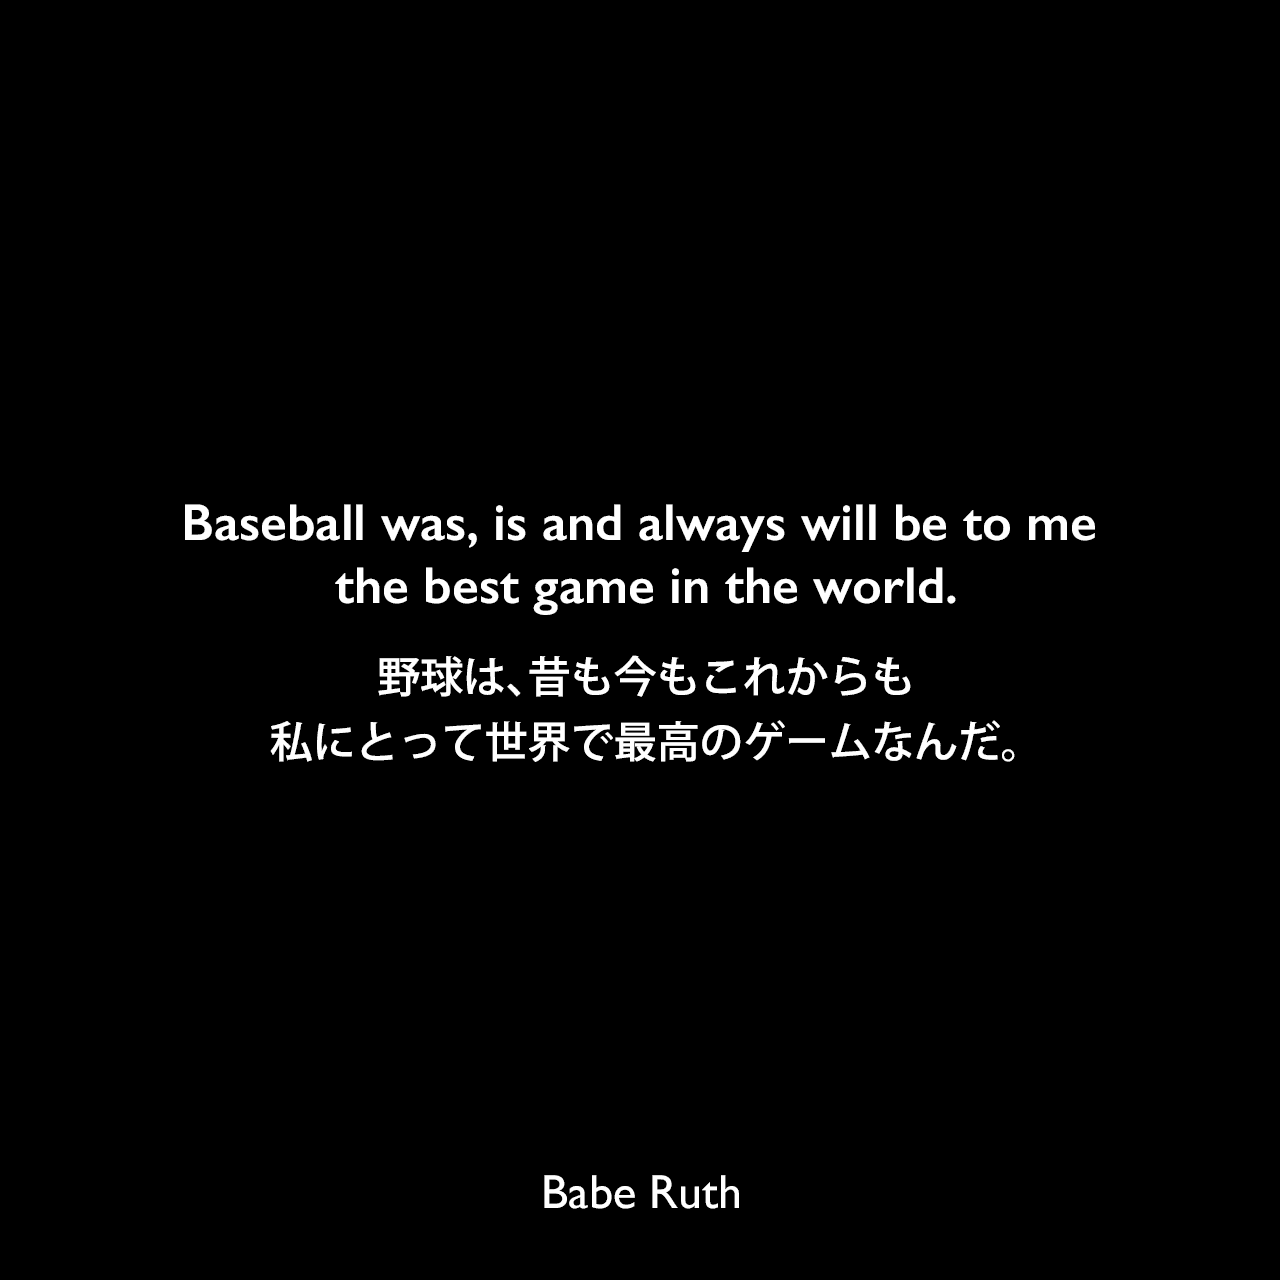 Baseball was, is and always will be to me the best game in the world.野球は、昔も今もこれからも、私にとって世界で最高のゲームなんだ。Babe Ruth